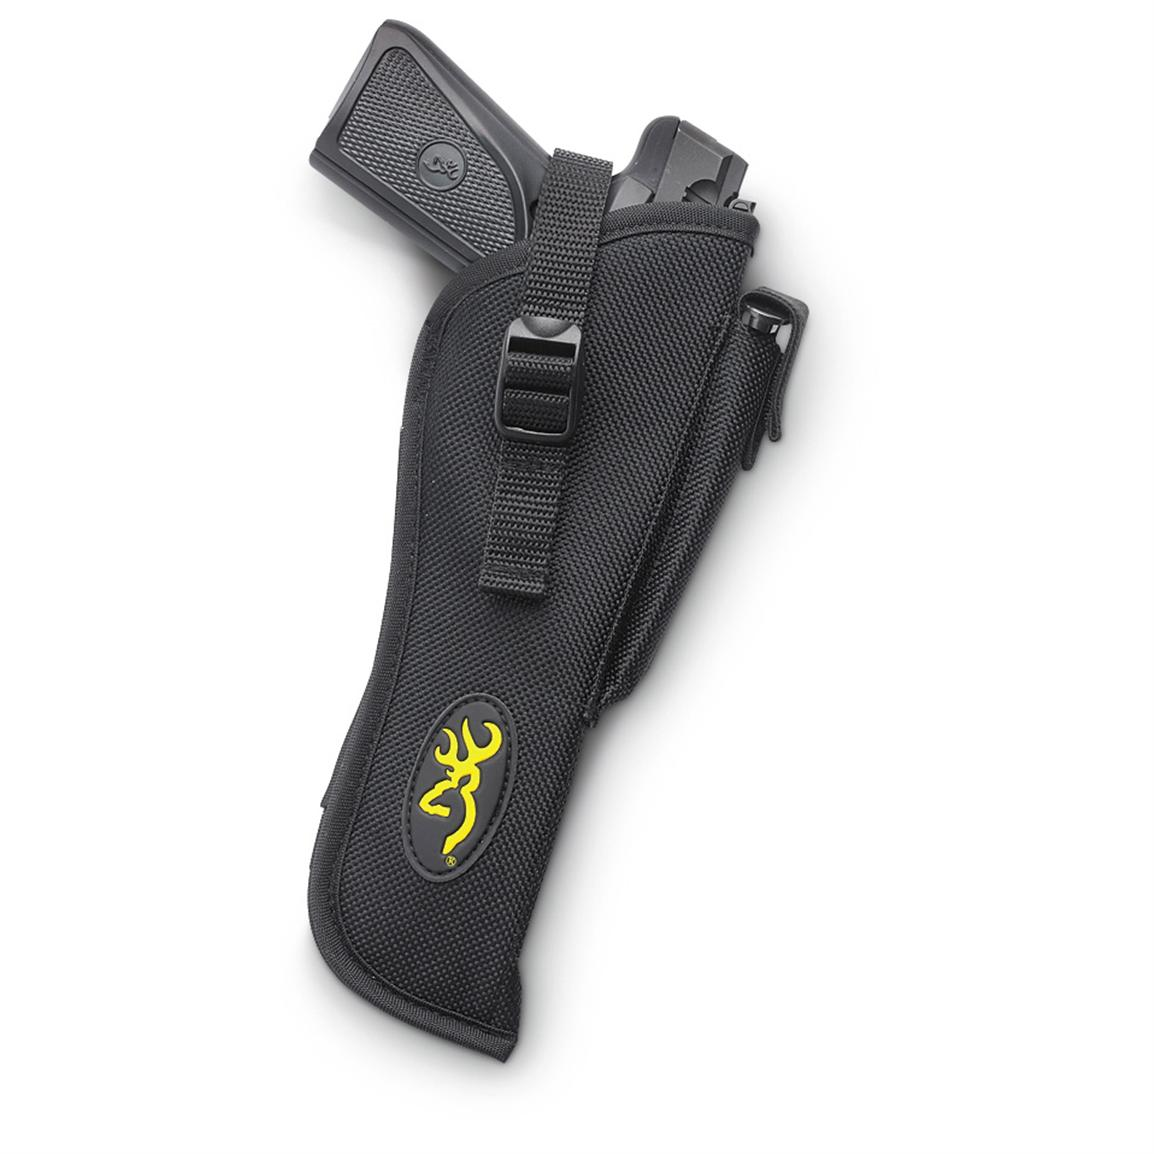 Browning Buck Mark Holster with Mag Pouch